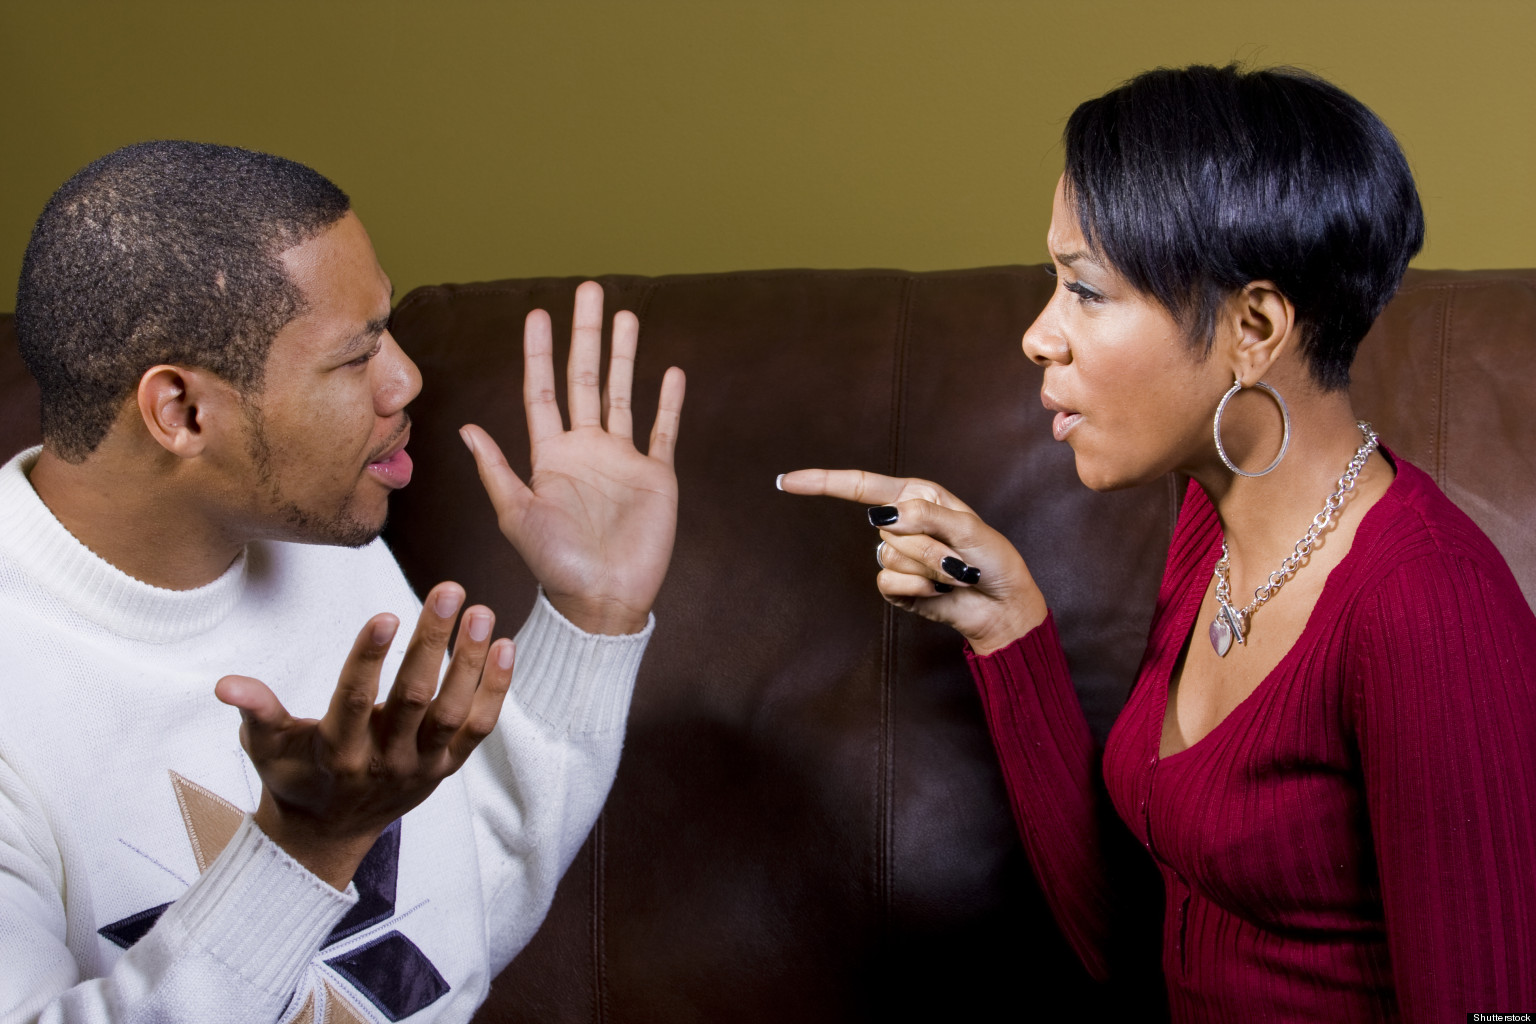 Arguing With Your Spouse Could Make You Fat